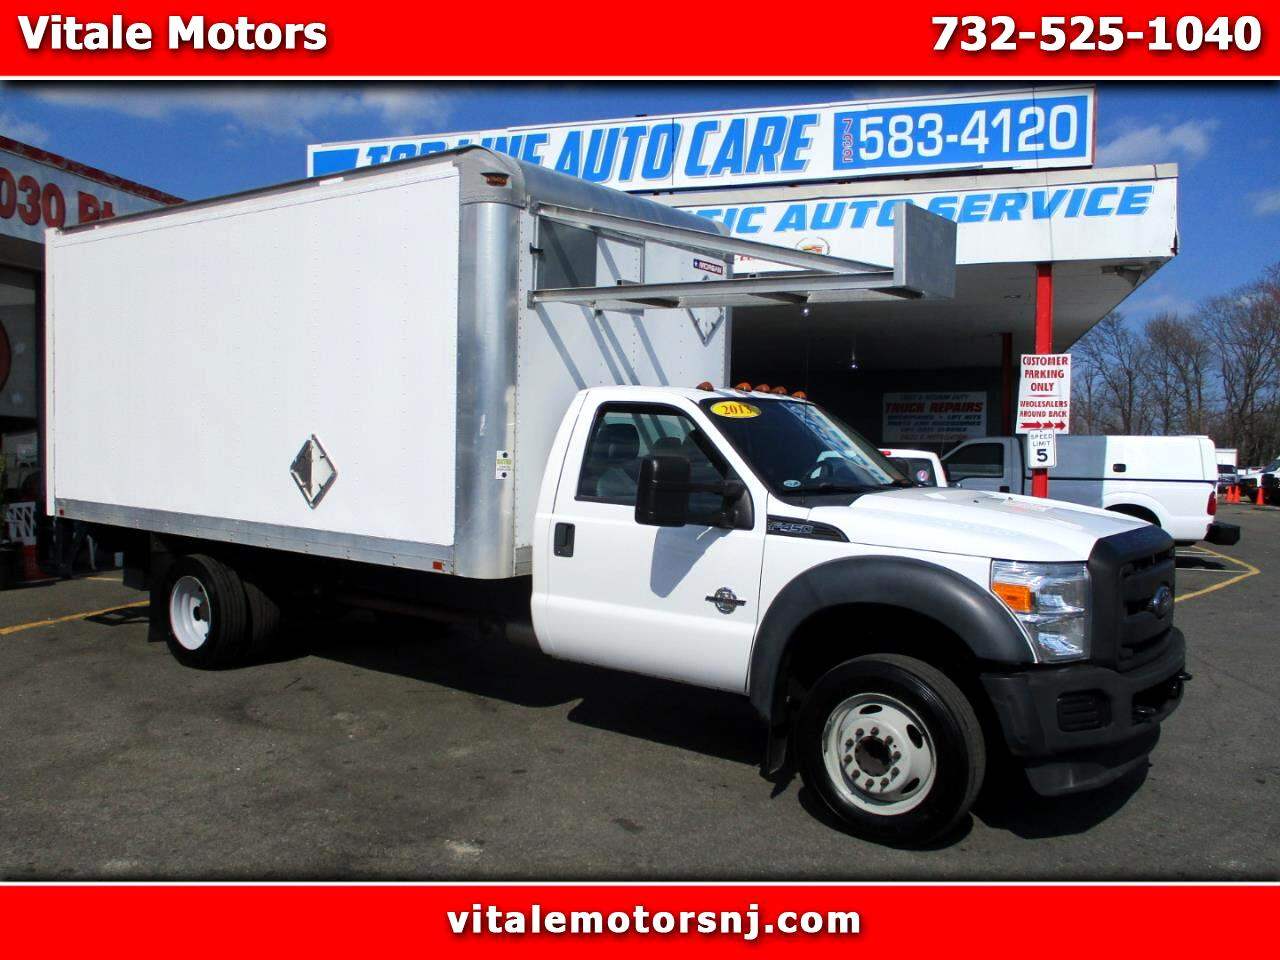 2013 Ford F-450 SD 16' BOX TRUCK 23' EXTENSION W/ LIFTGATE DIESEL